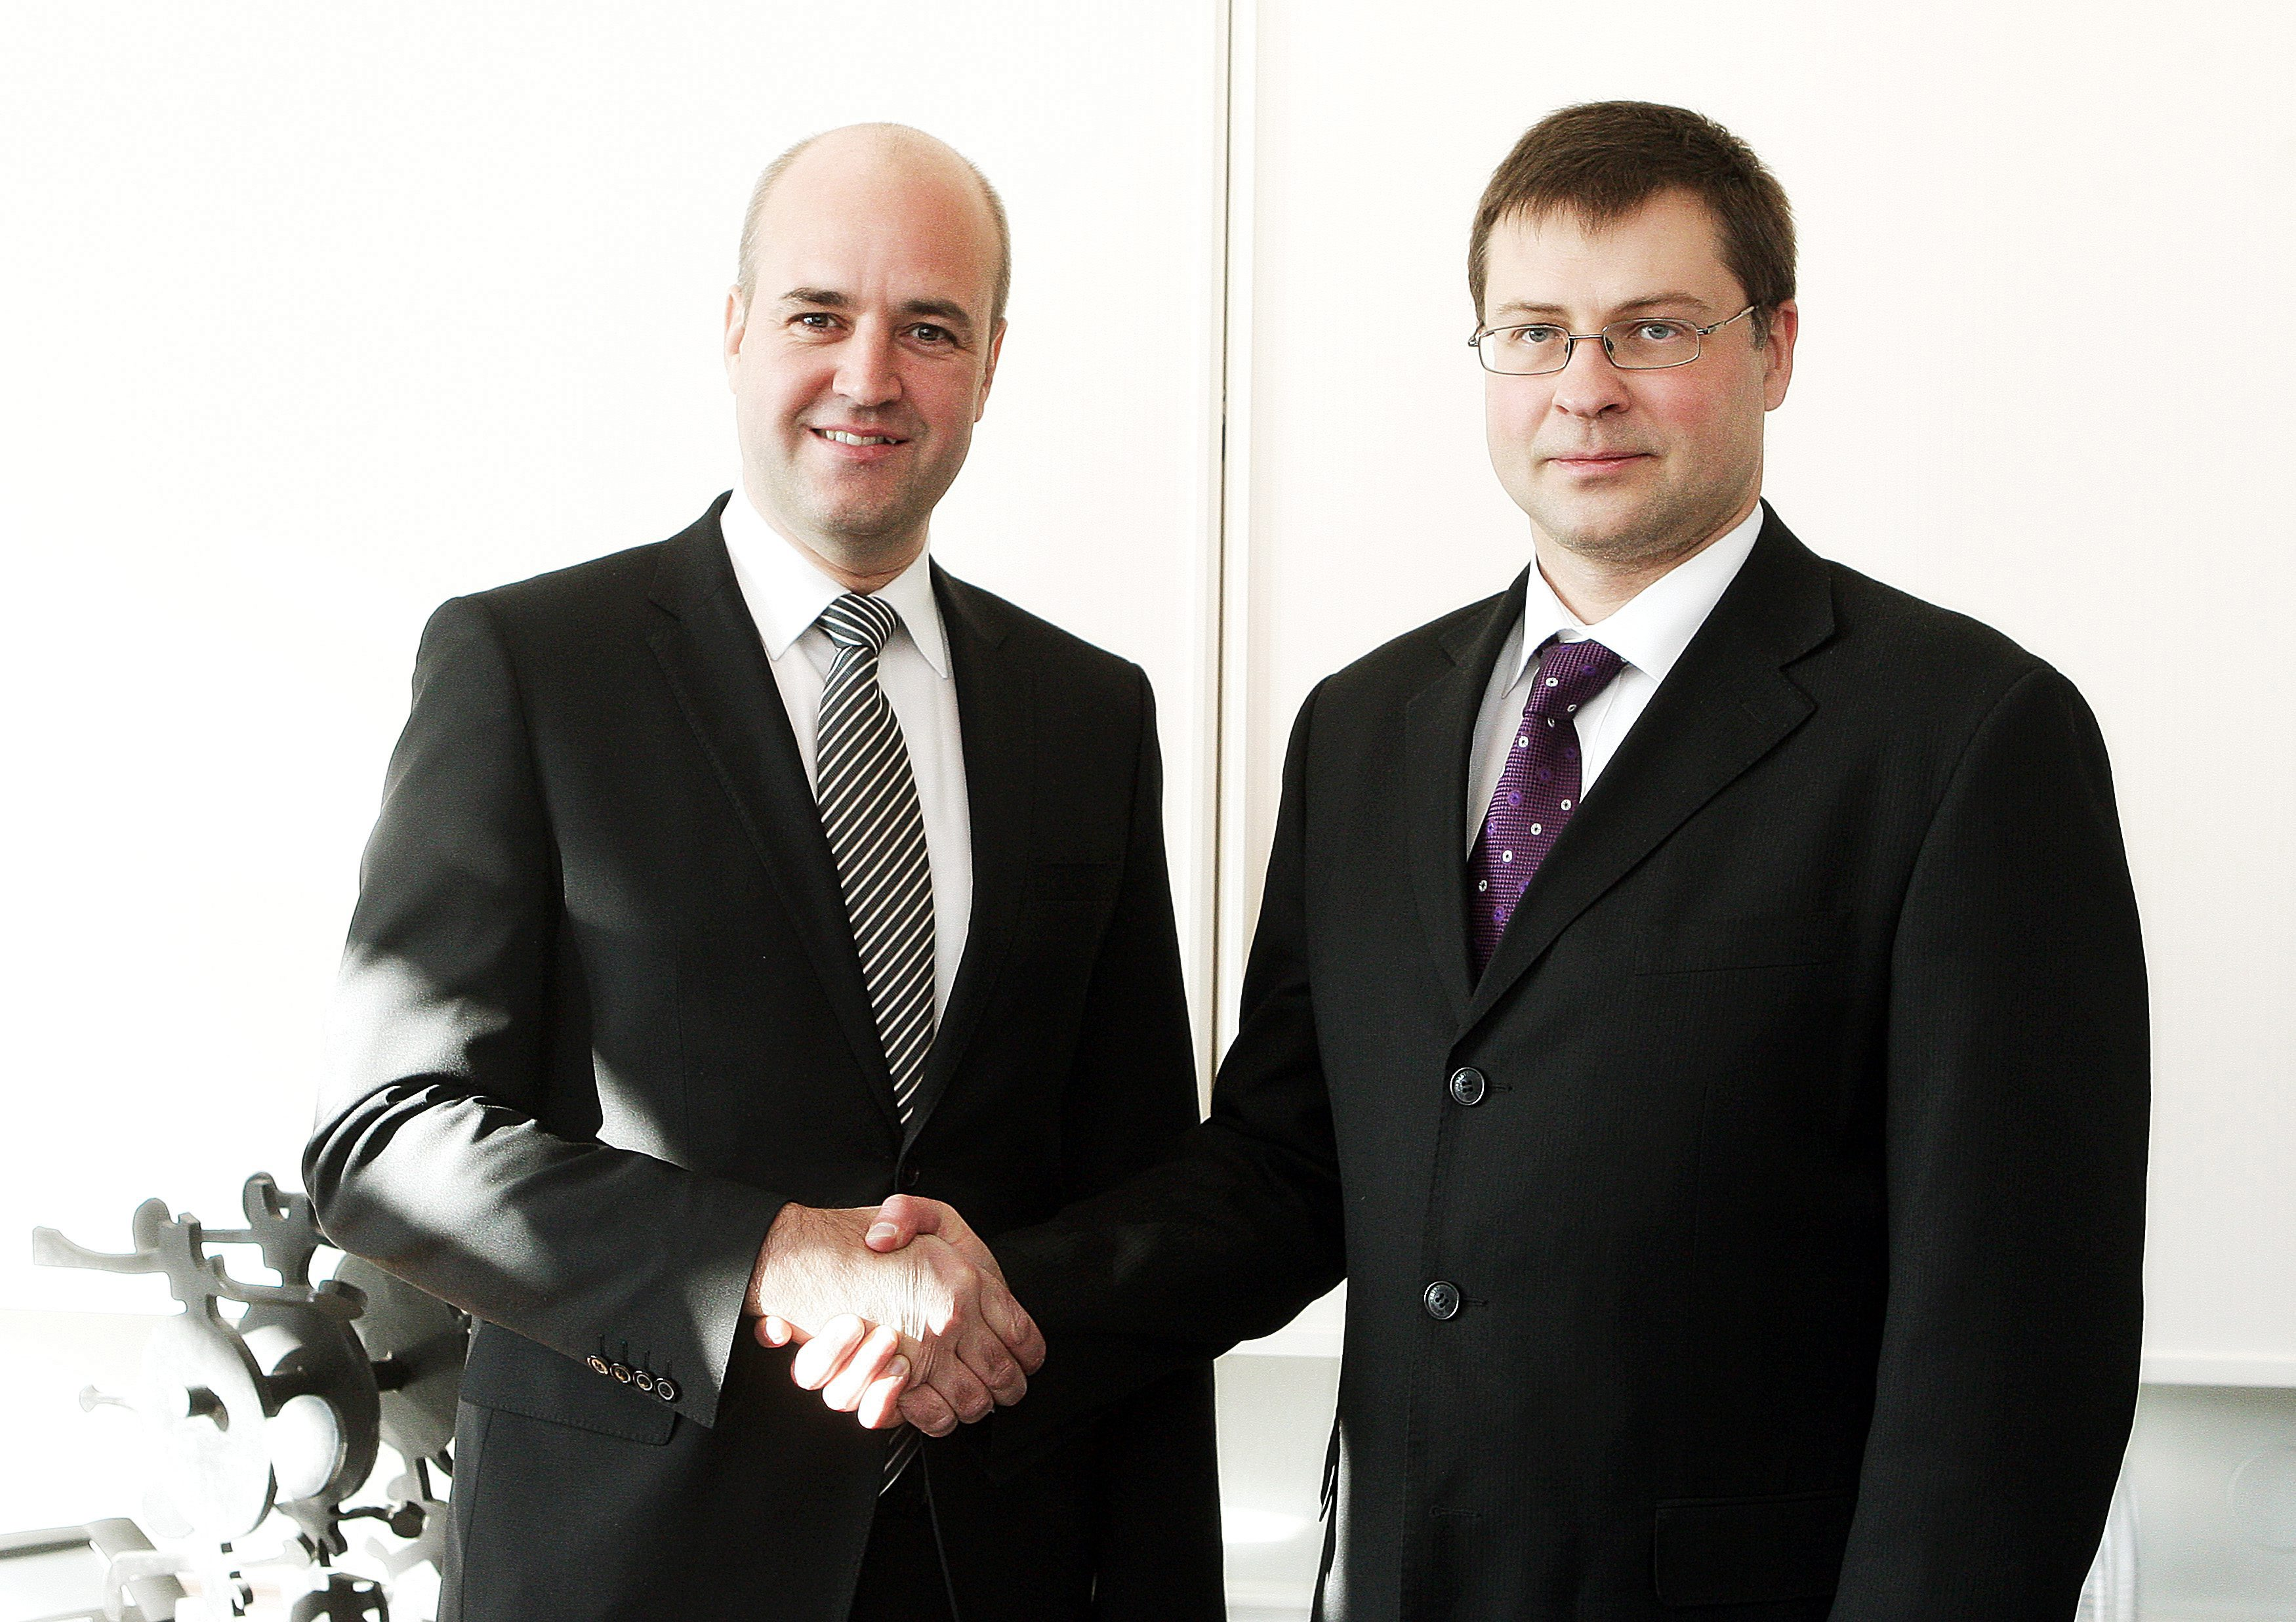 Not as friendly as it seems. Swedish Prime Minister Fredrik Reinfeldt and Latvian Prime Minister Valdis Dombrovkis. Photo: Gunnar Seijbold/Swedish Government Offices